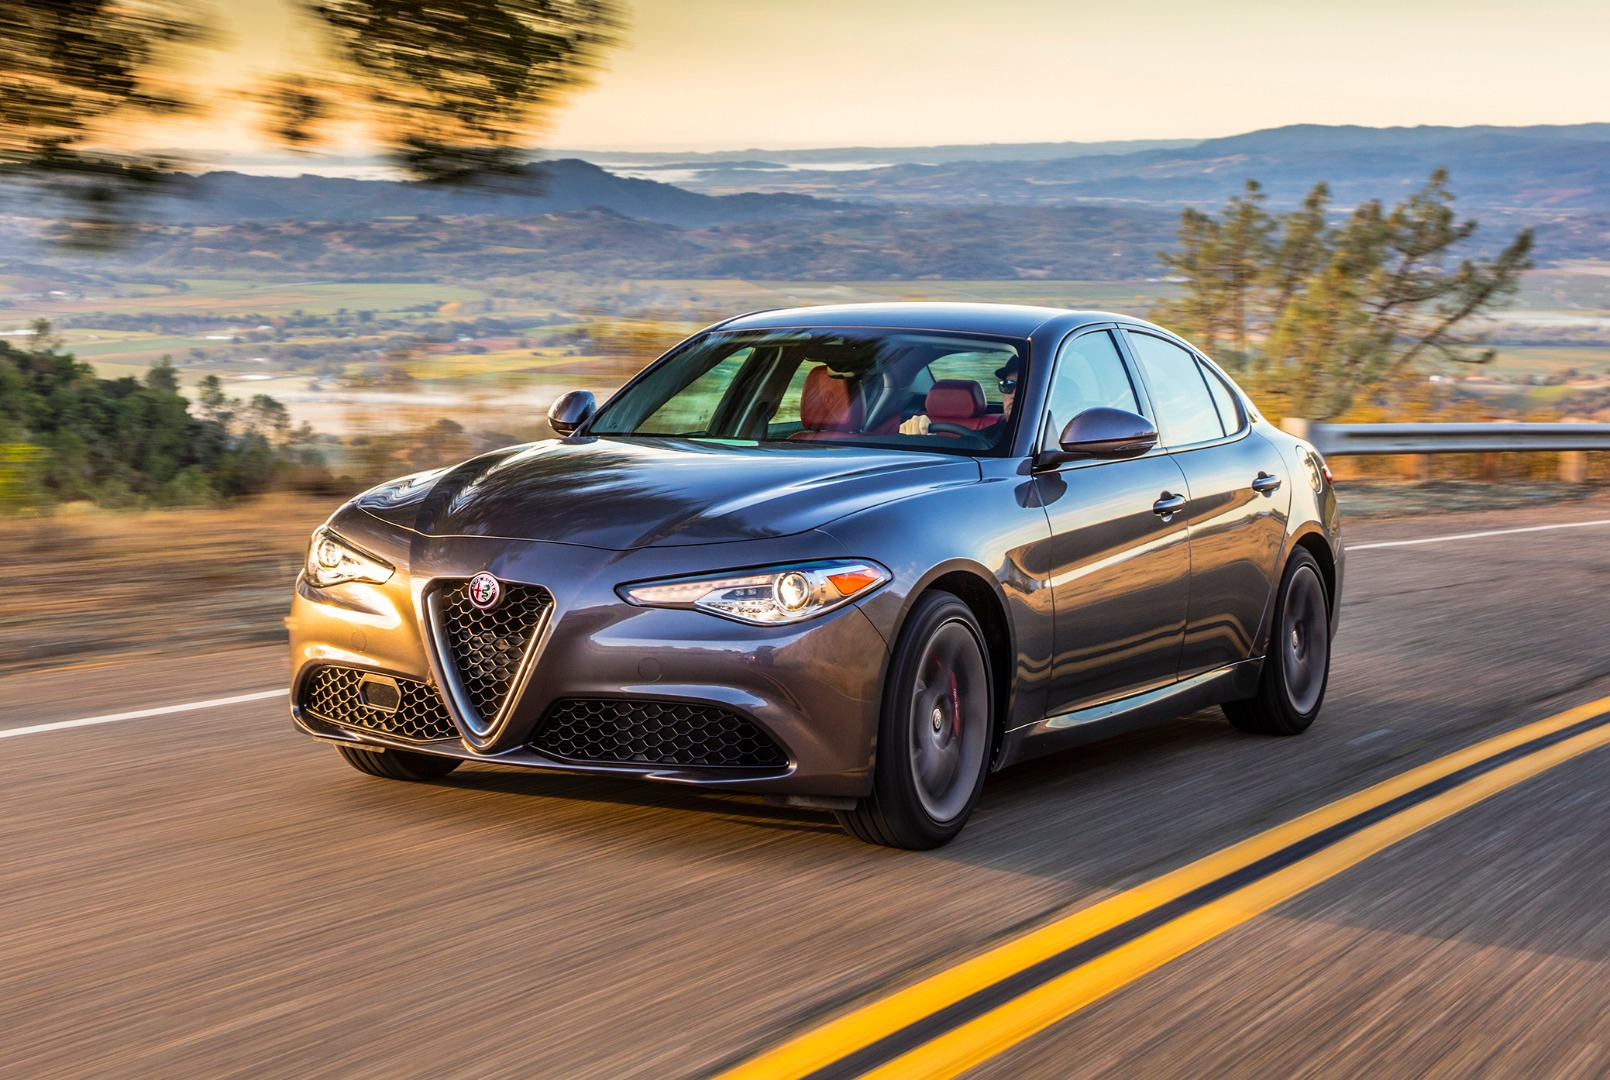 News Alfa Romeo S Resurgence Includes 9 New Cars By 2021